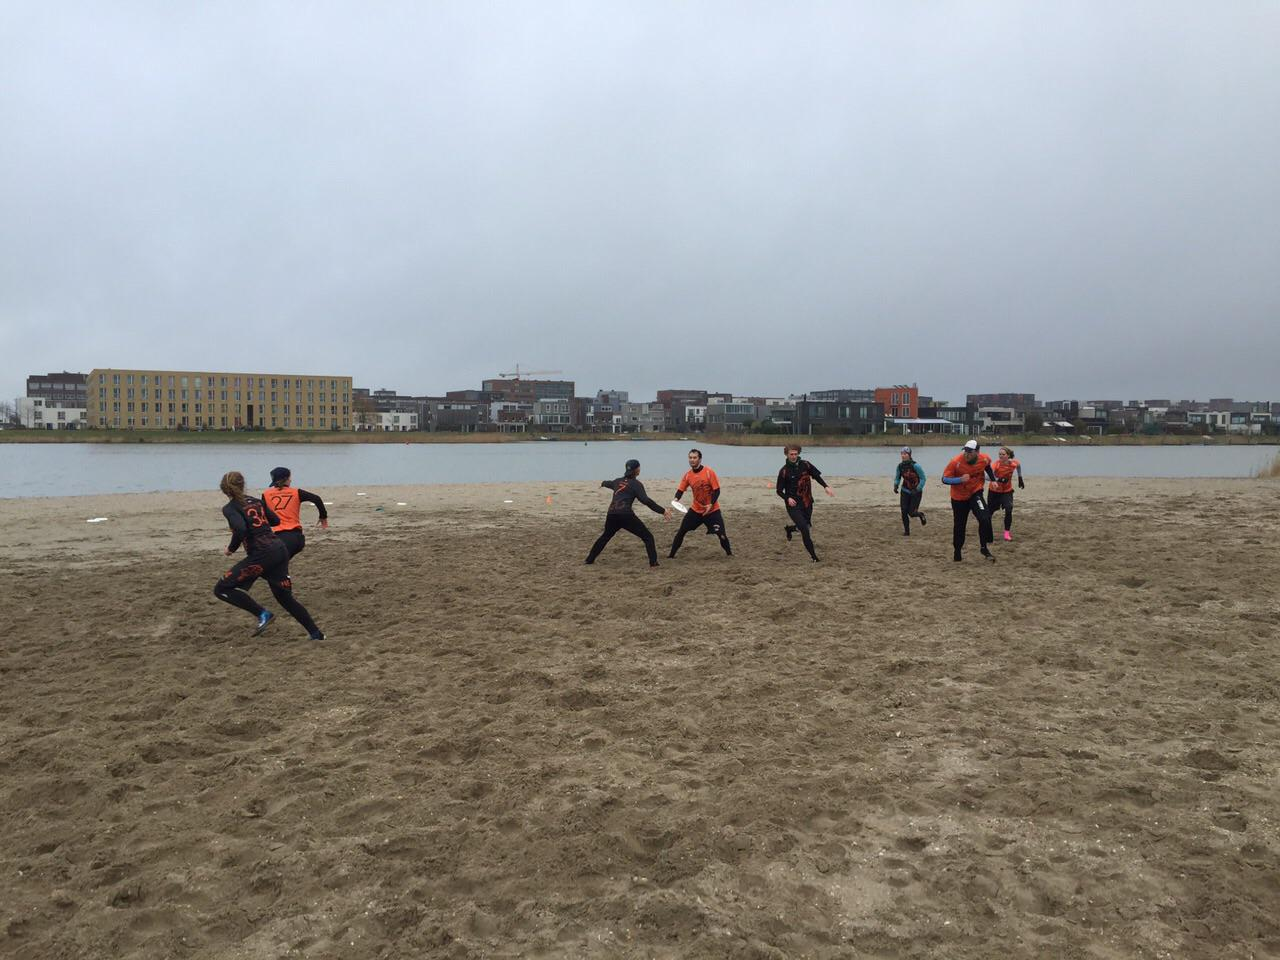 #wcbu2015 WCBU preview Dutch Mixed Team https://t.co/iHClWTb6XA http://t.co/JMwTcWOK2P <a href='http://twitter.com/SimonCocking/status/571458216707657728/photo/1' target='_blank'>See original »</a>